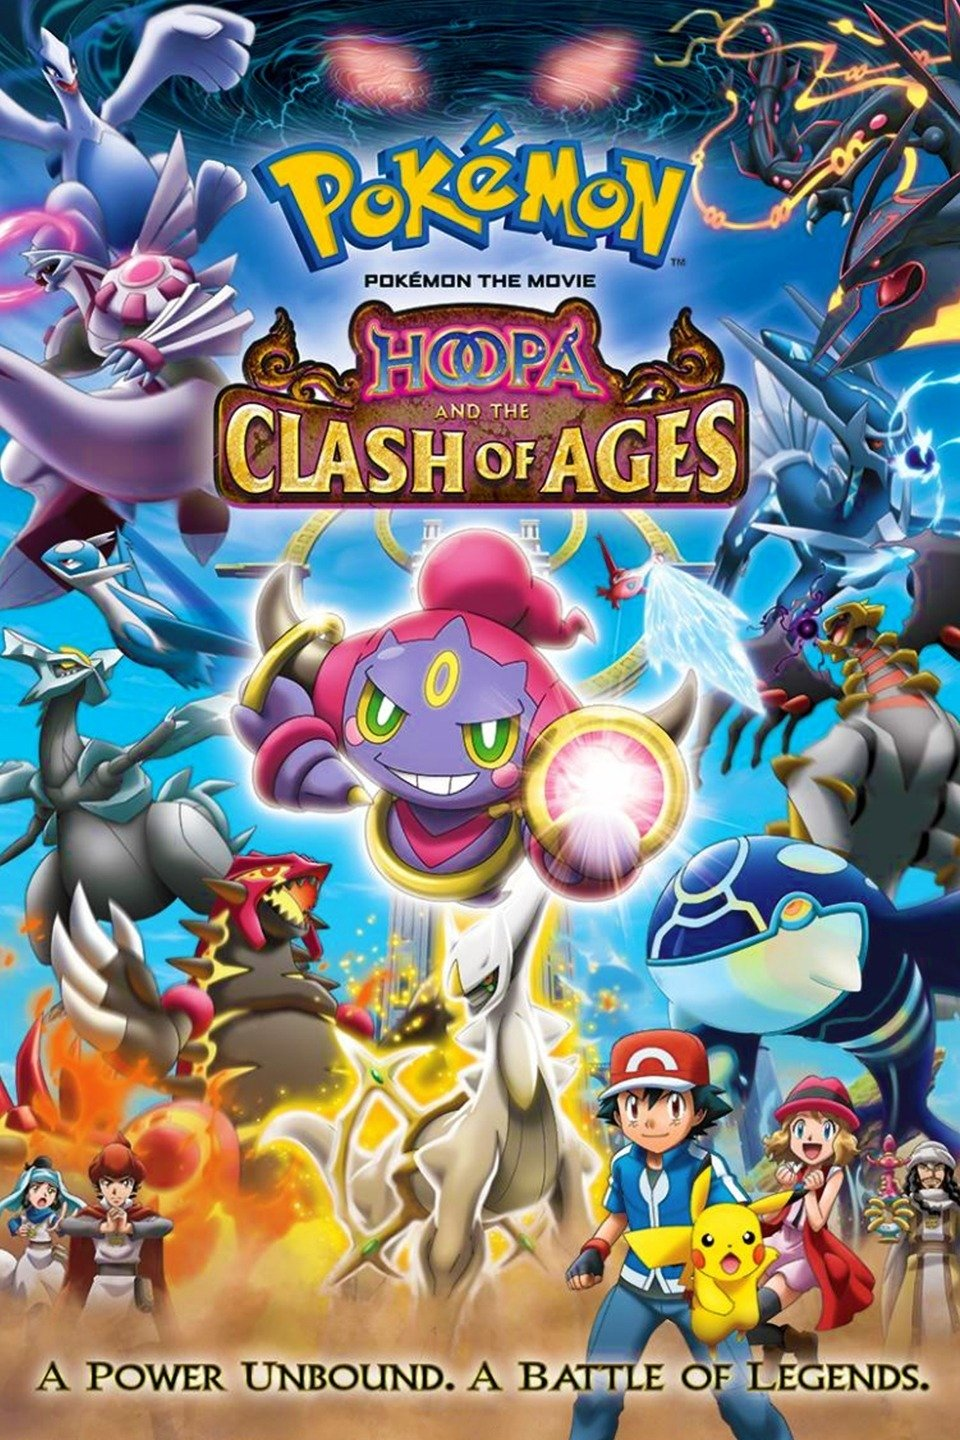 How To POKEMON MOVIE 18 HOOPA AND THE CLASH OF AGES (GOOGLE